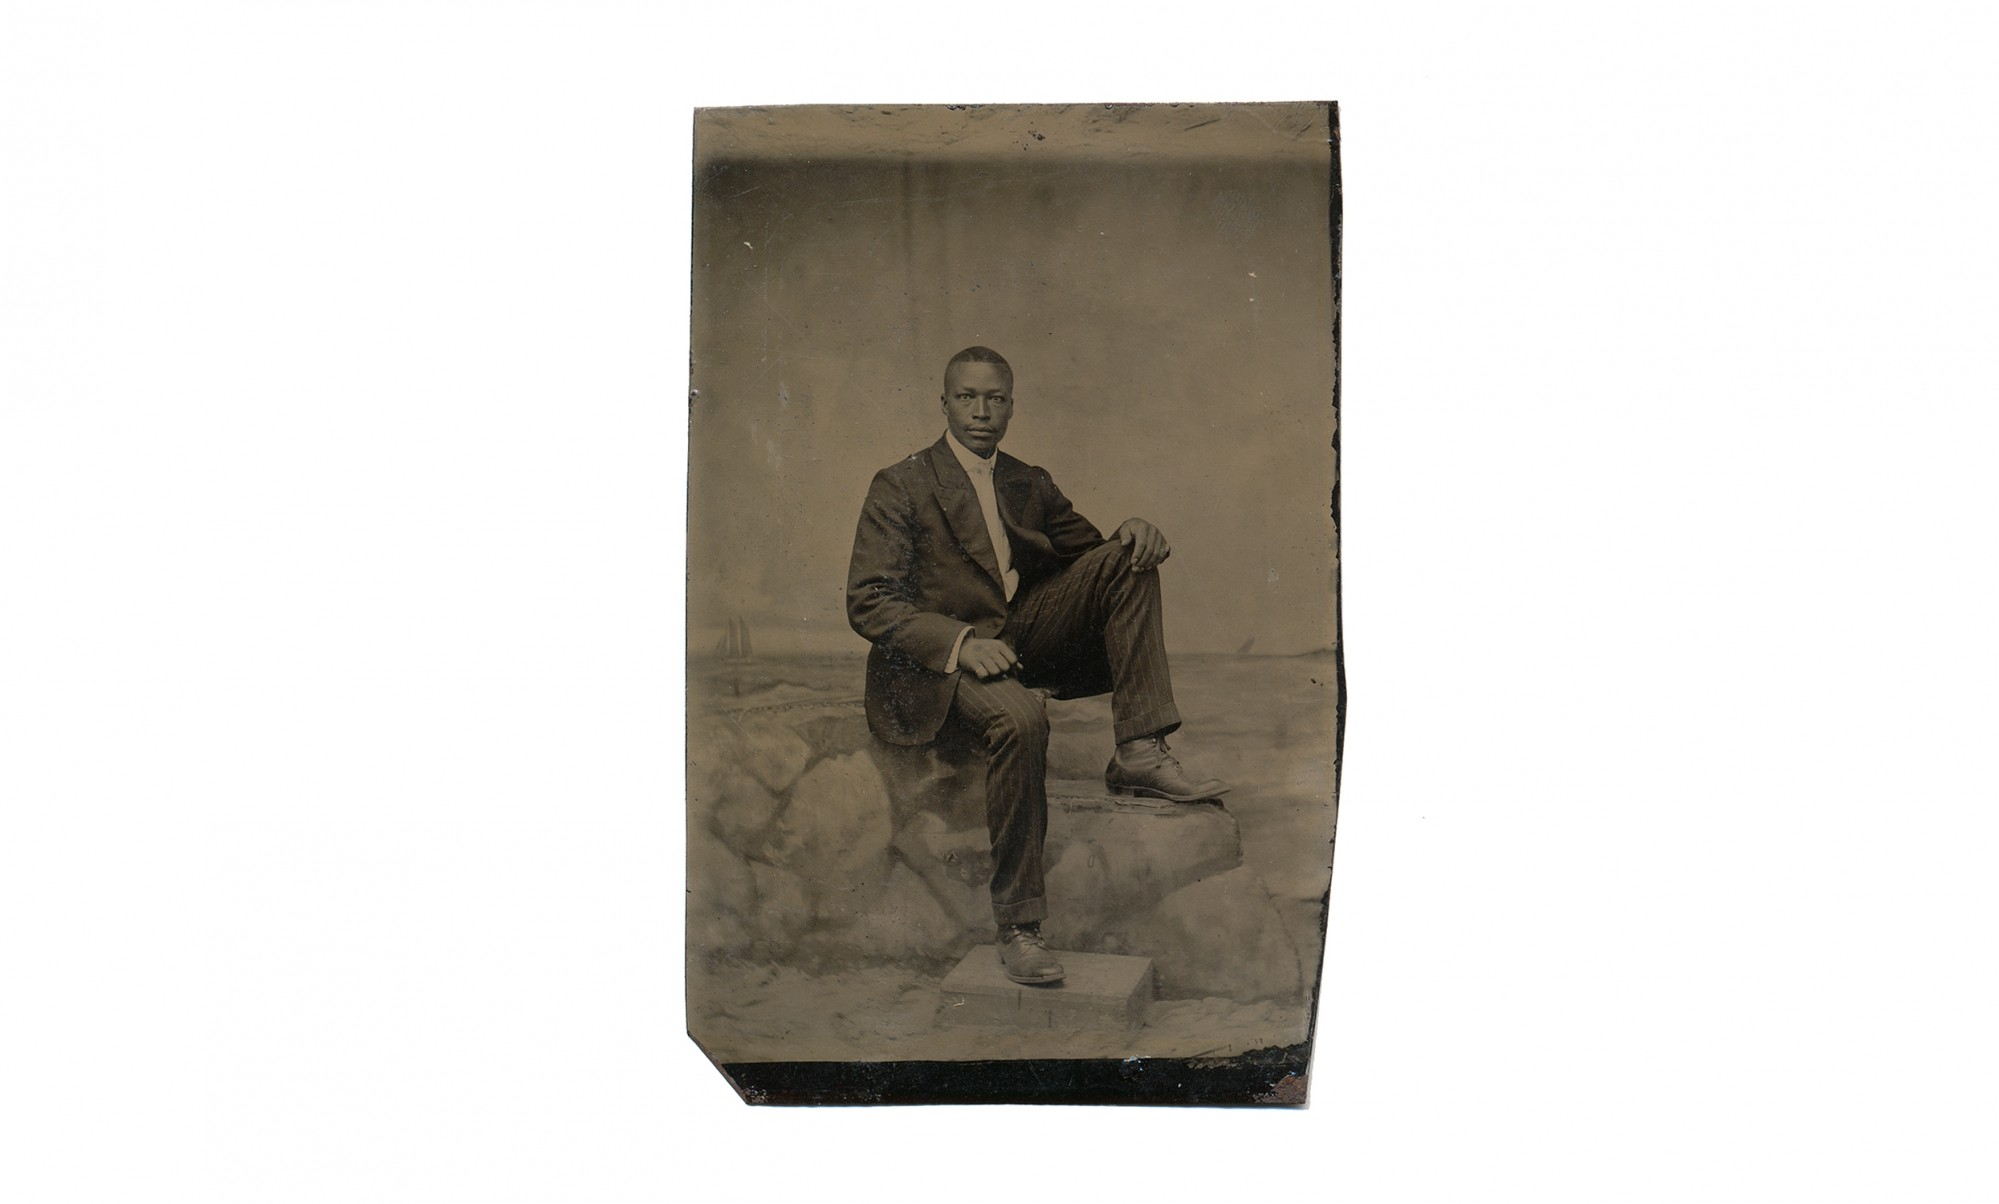 TINTYPE OF A YOUNG AFRICAN AMERICAN MAN SEATED ON A STONE WALL